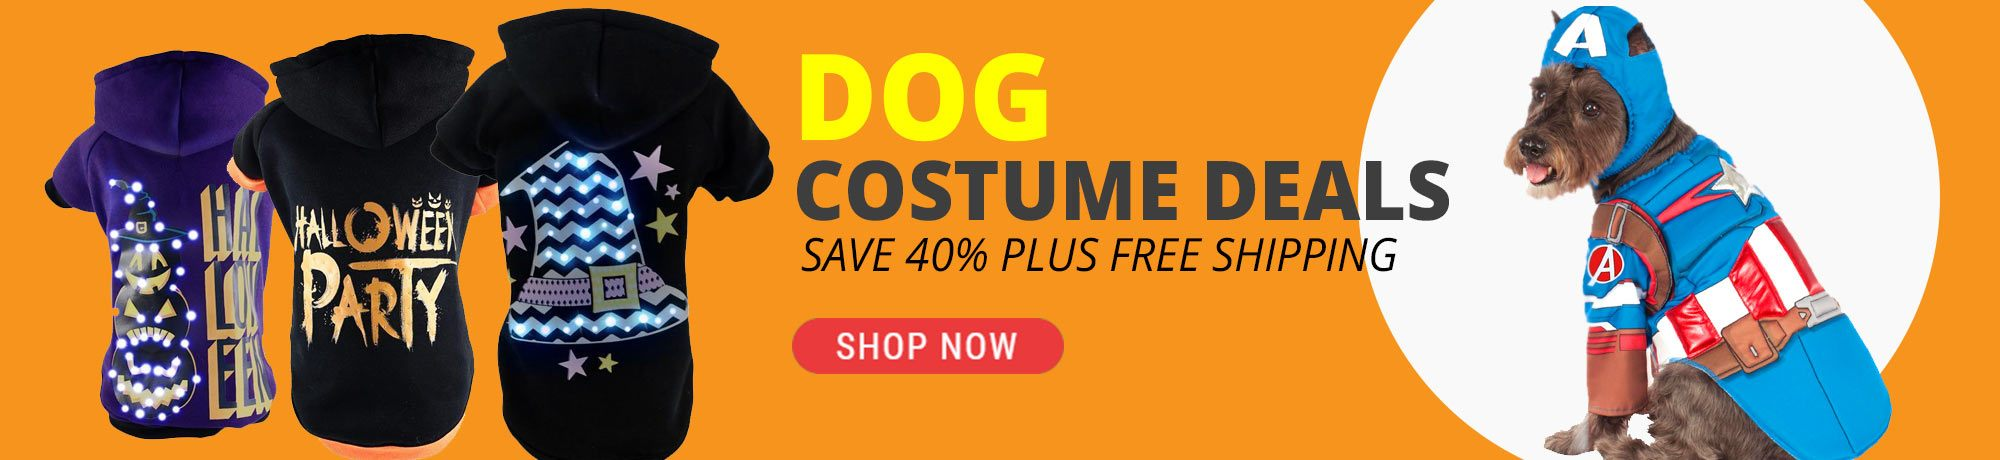 dog costume deals with free shipping